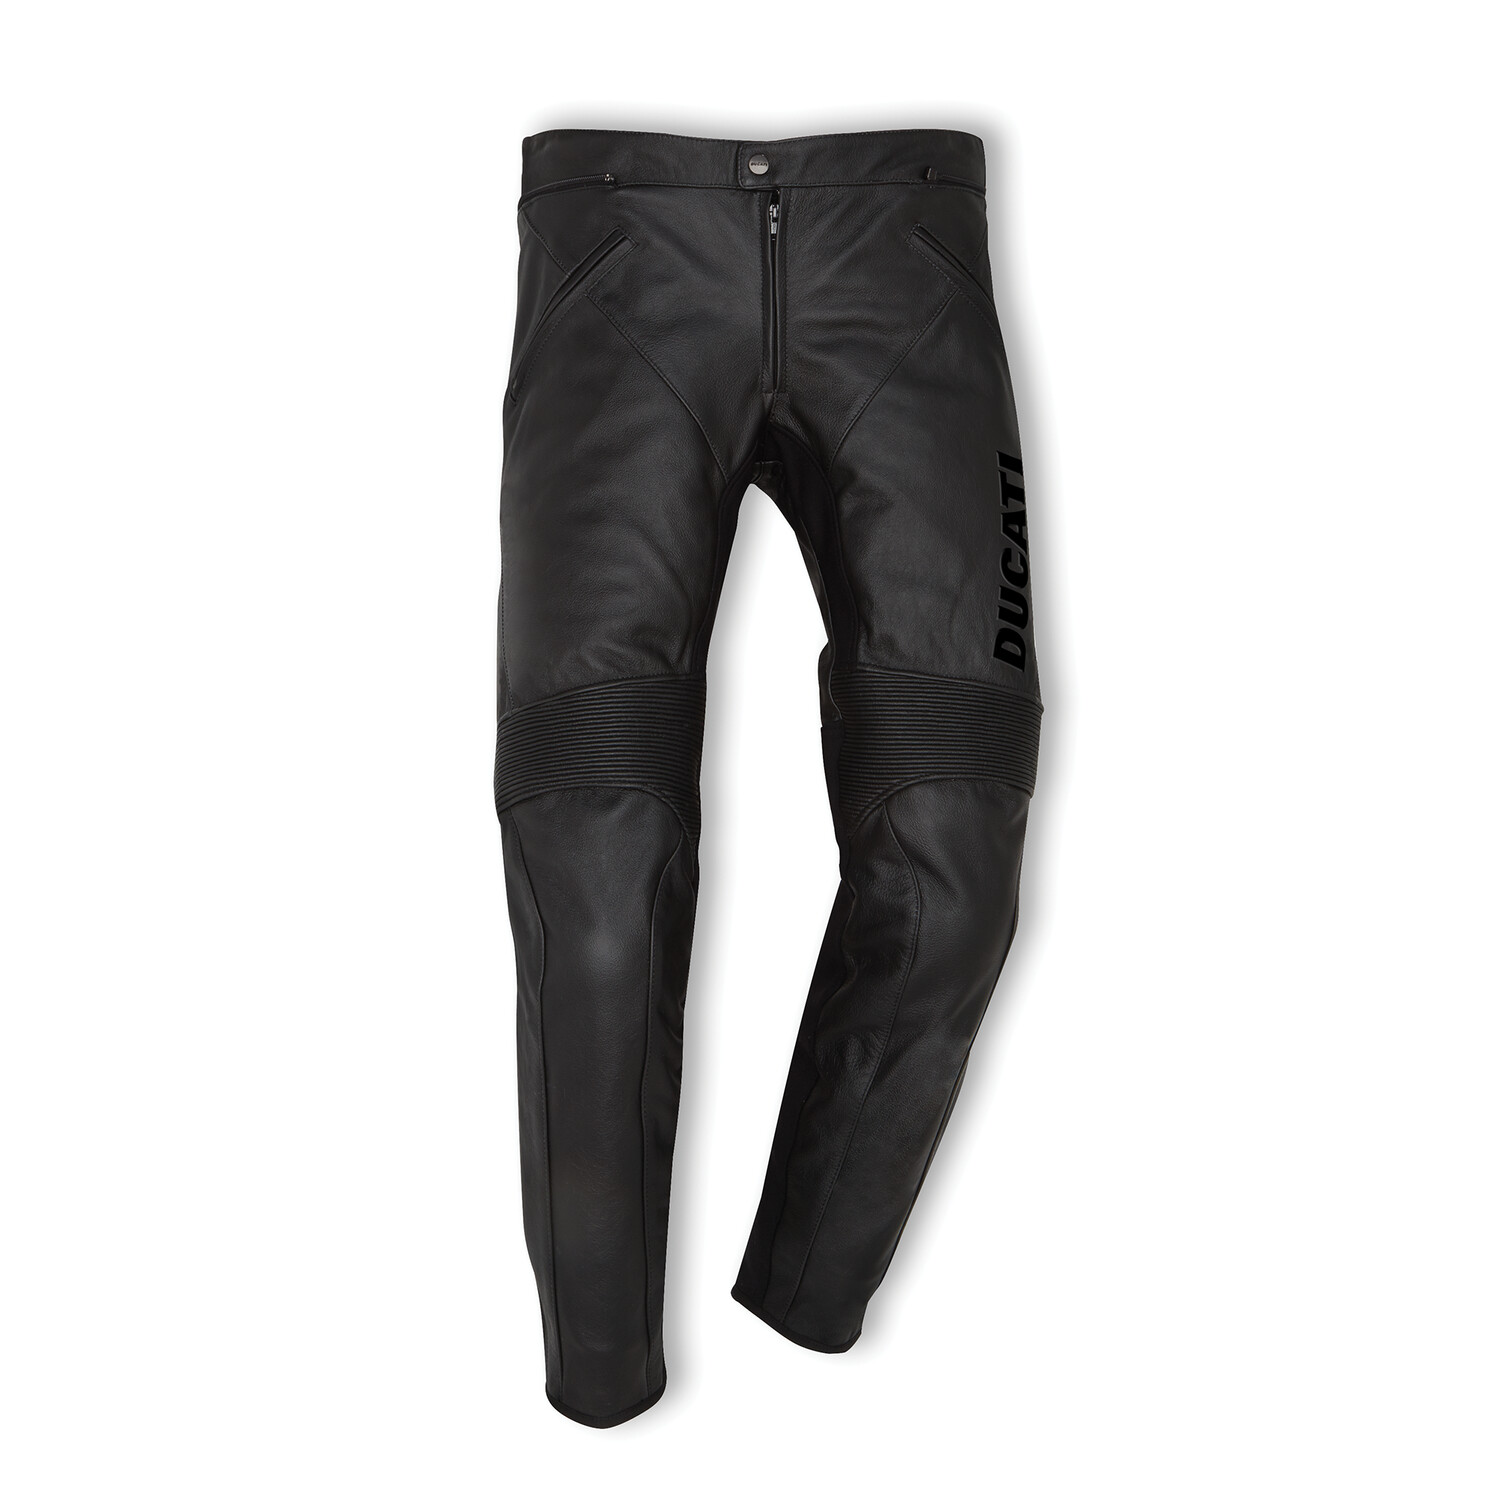 Company C3 - Leather trousers